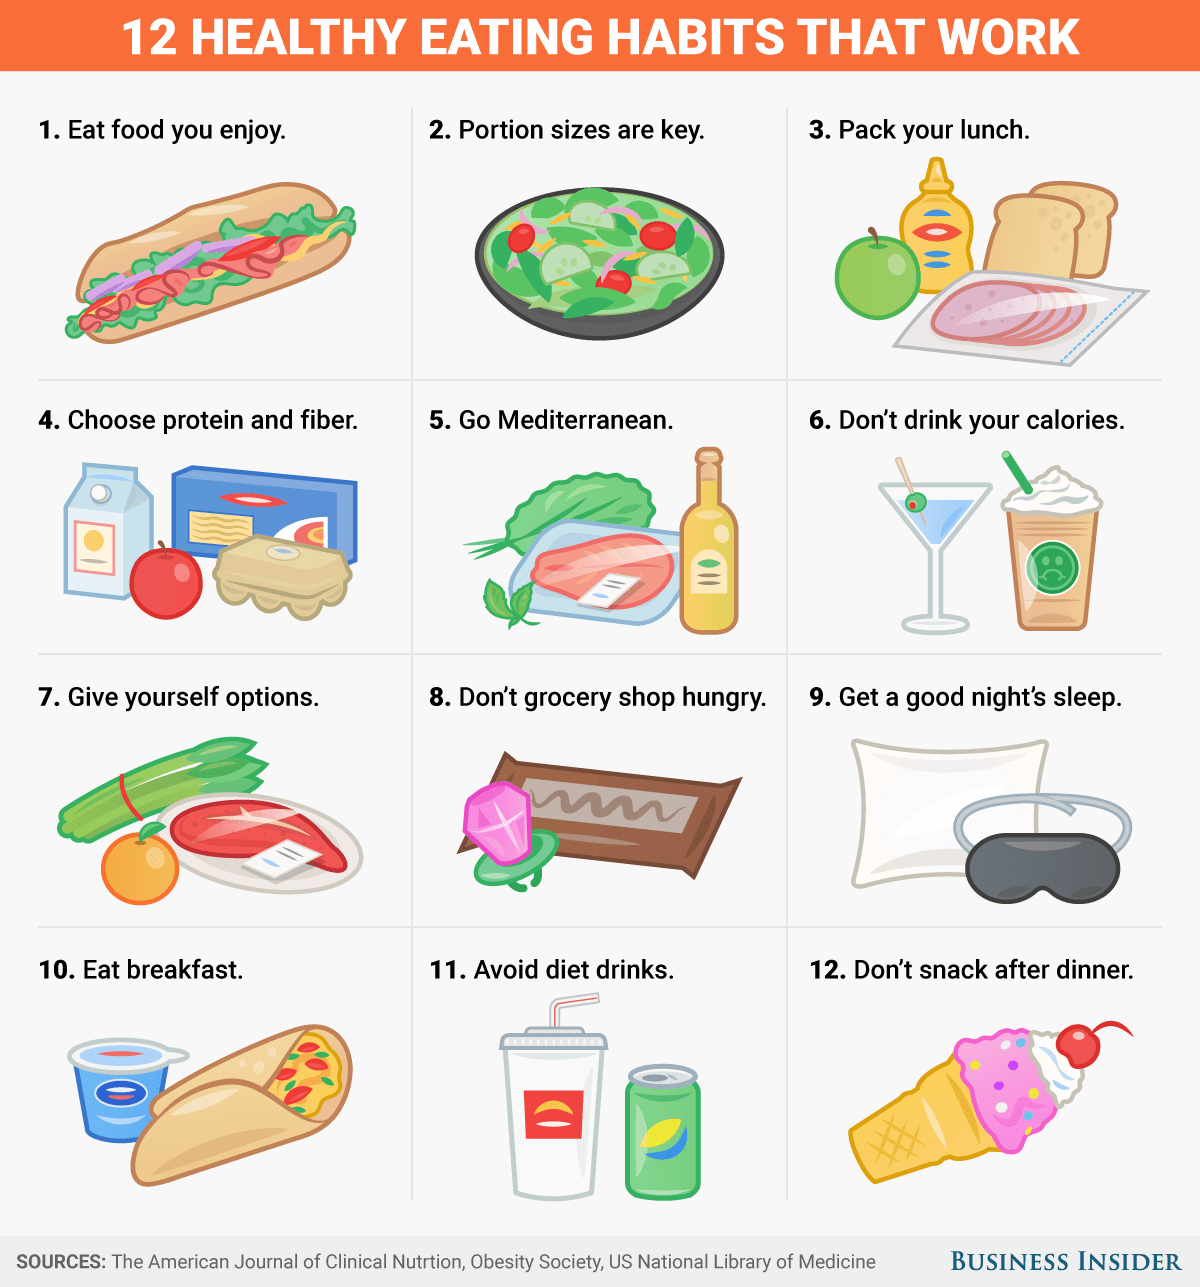 12 Healthy Eating Habits That Work According To Science